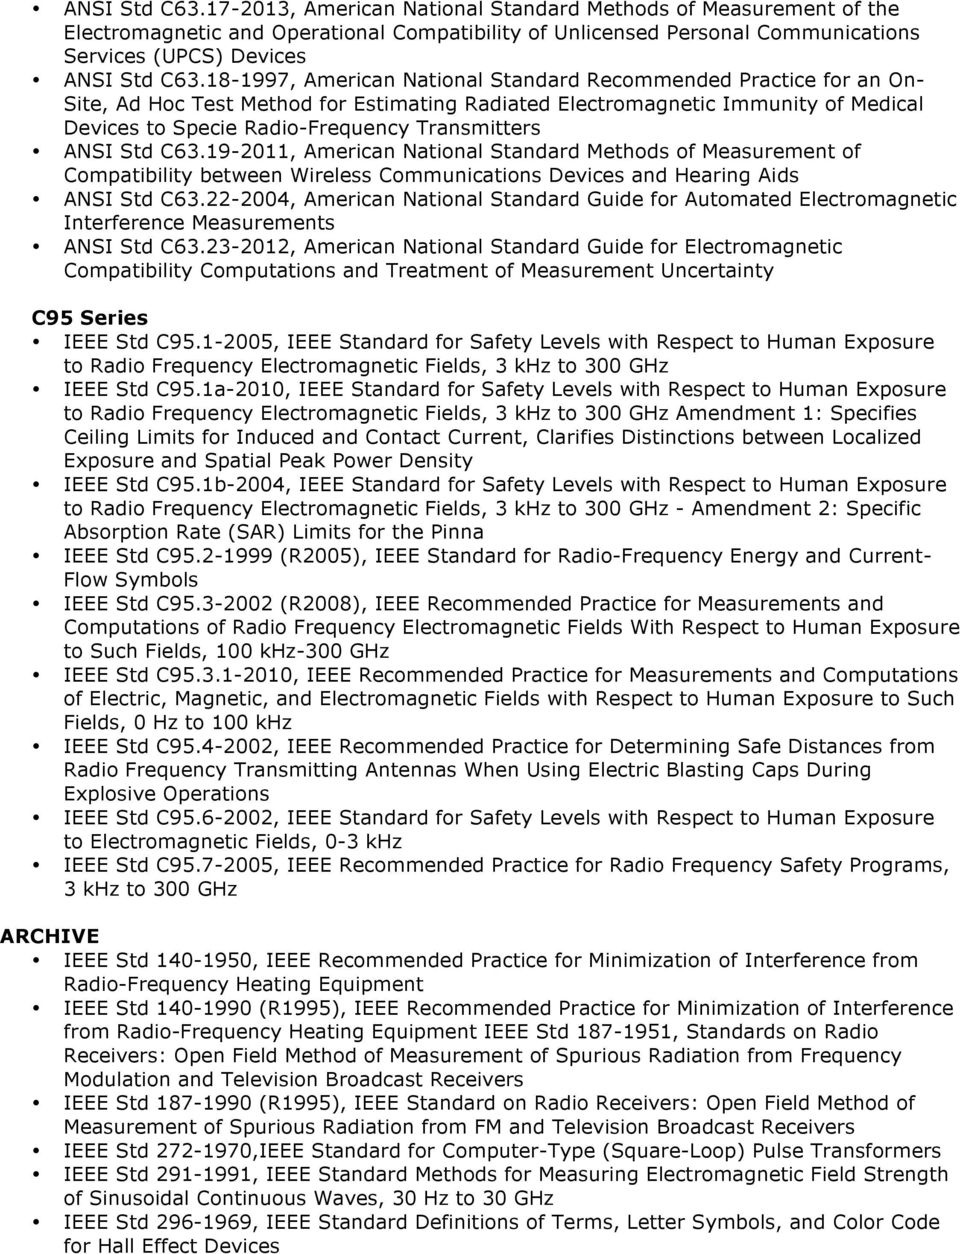 ANSI Std C63.19-2011, American National Standard Methods of Measurement of Compatibility between Wireless Communications Devices and Hearing Aids ANSI Std C63.